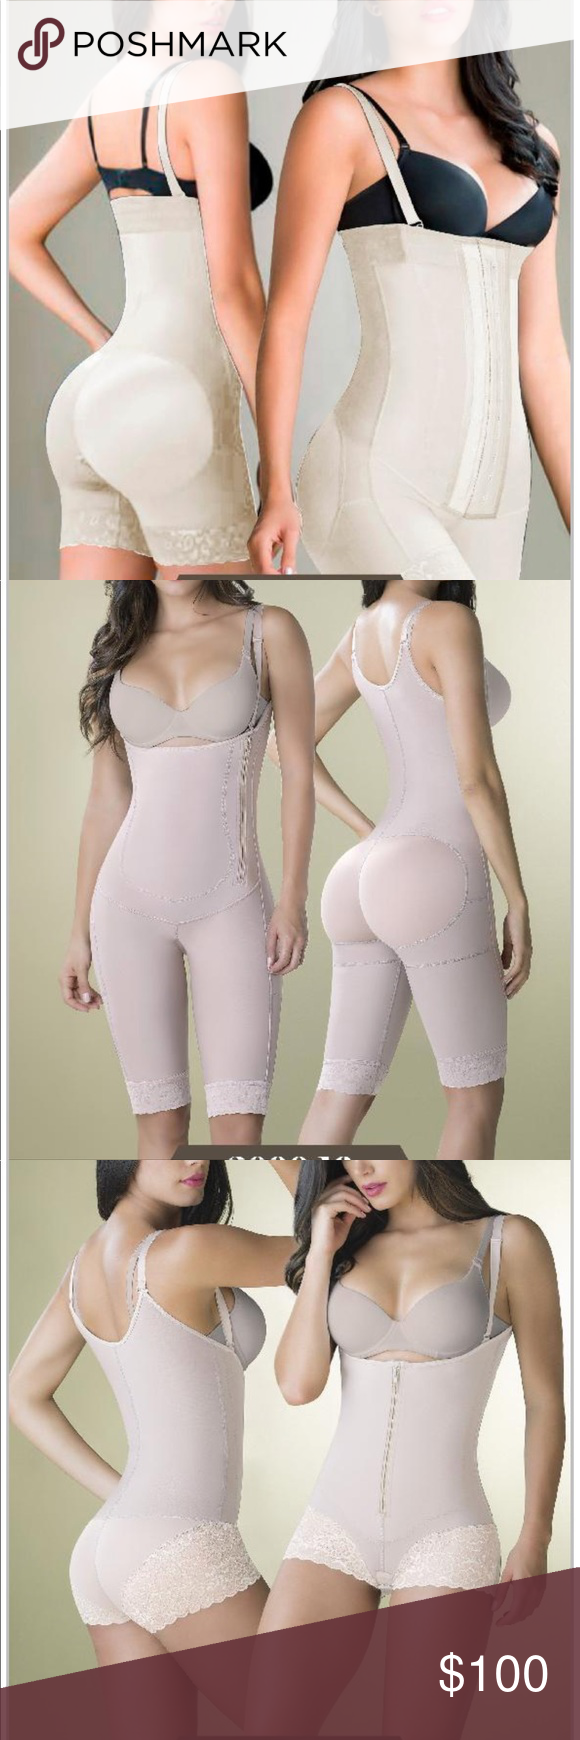 b55a479053210 Colombian girdles Brand new 100% original from Colombia Intimates    Sleepwear Shapewear